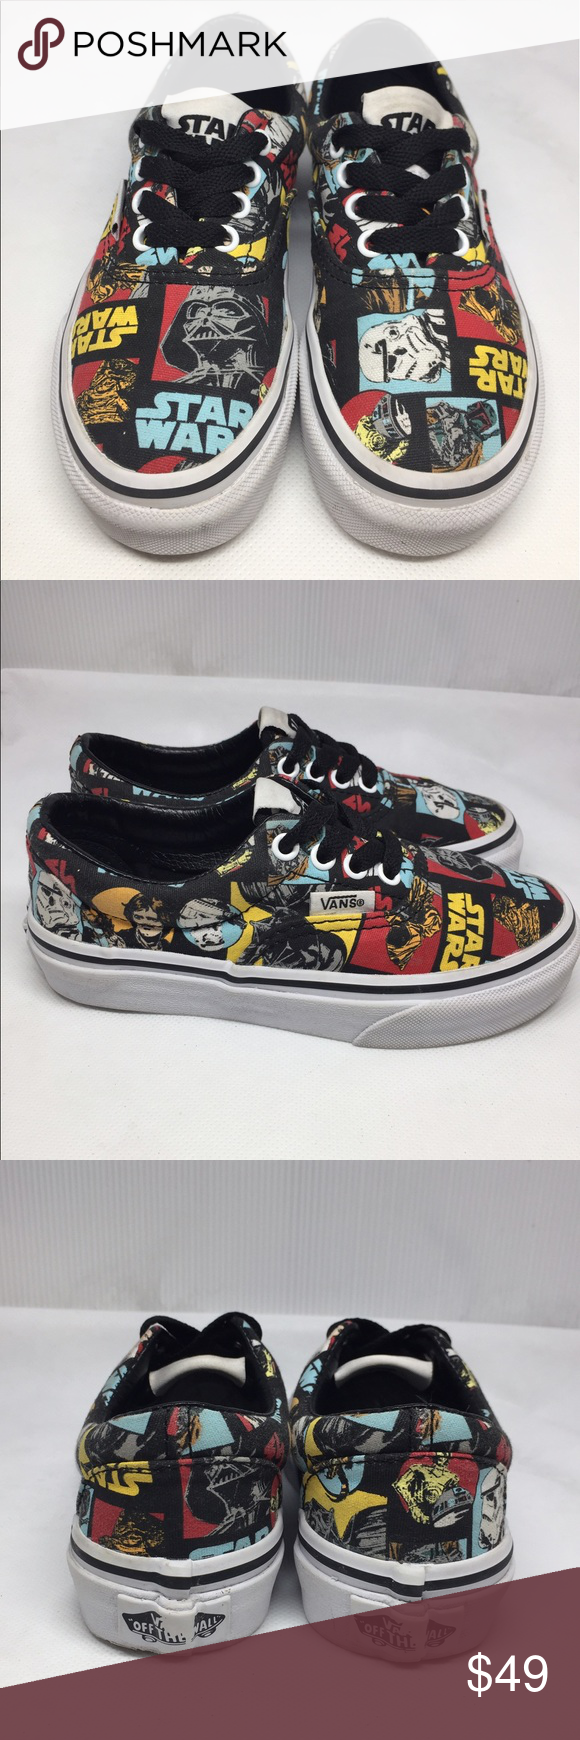 4fedfa381ddd4e Star Wars Vans Authentic RARE limited edition Rare Limited Edition Star  Wars Vans Authentic lace up